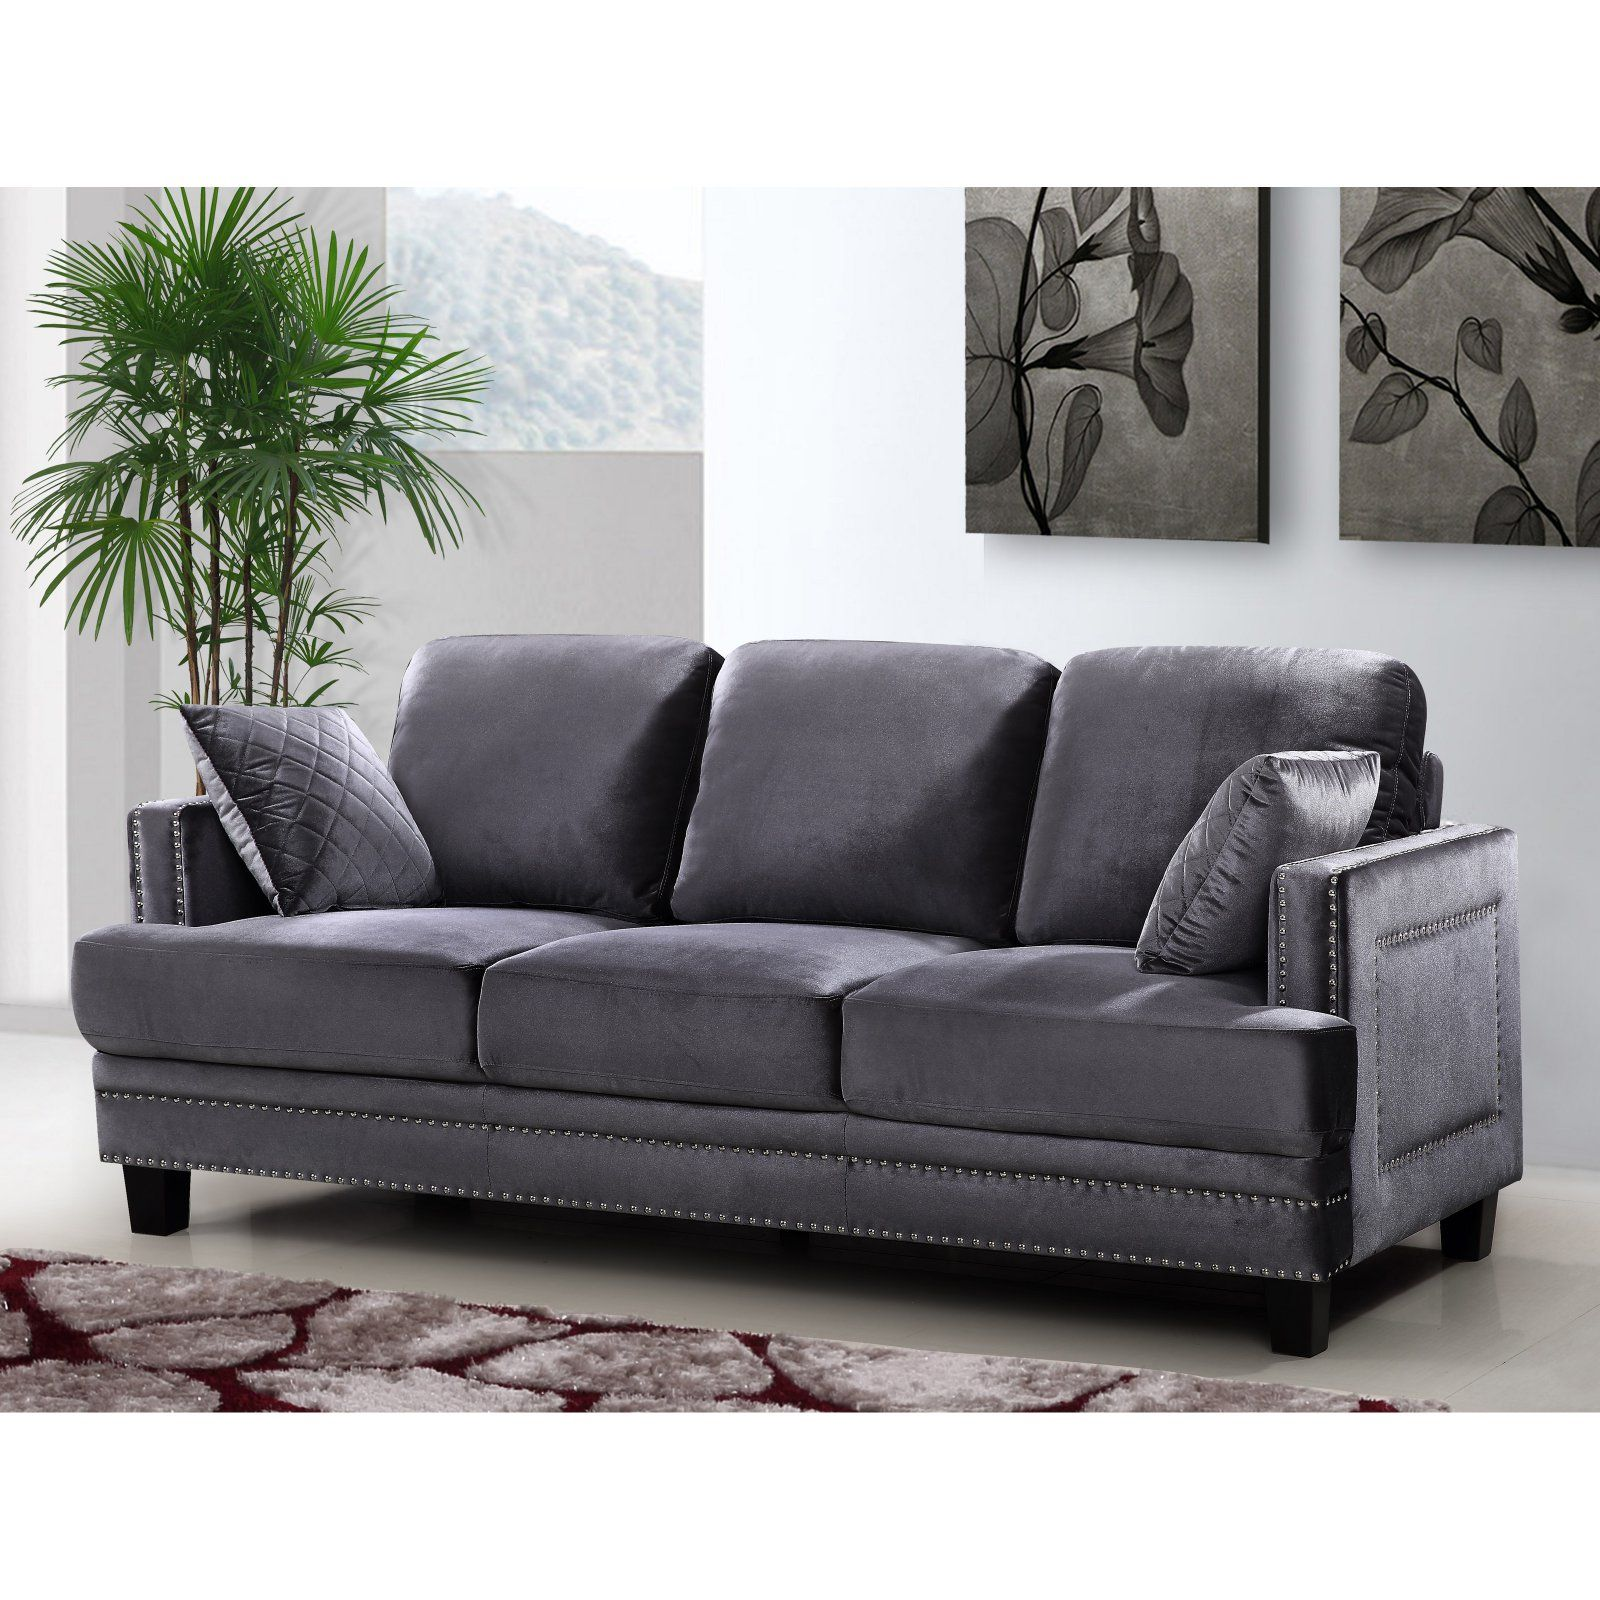 Meridian furniture inc ferrara sofa gray